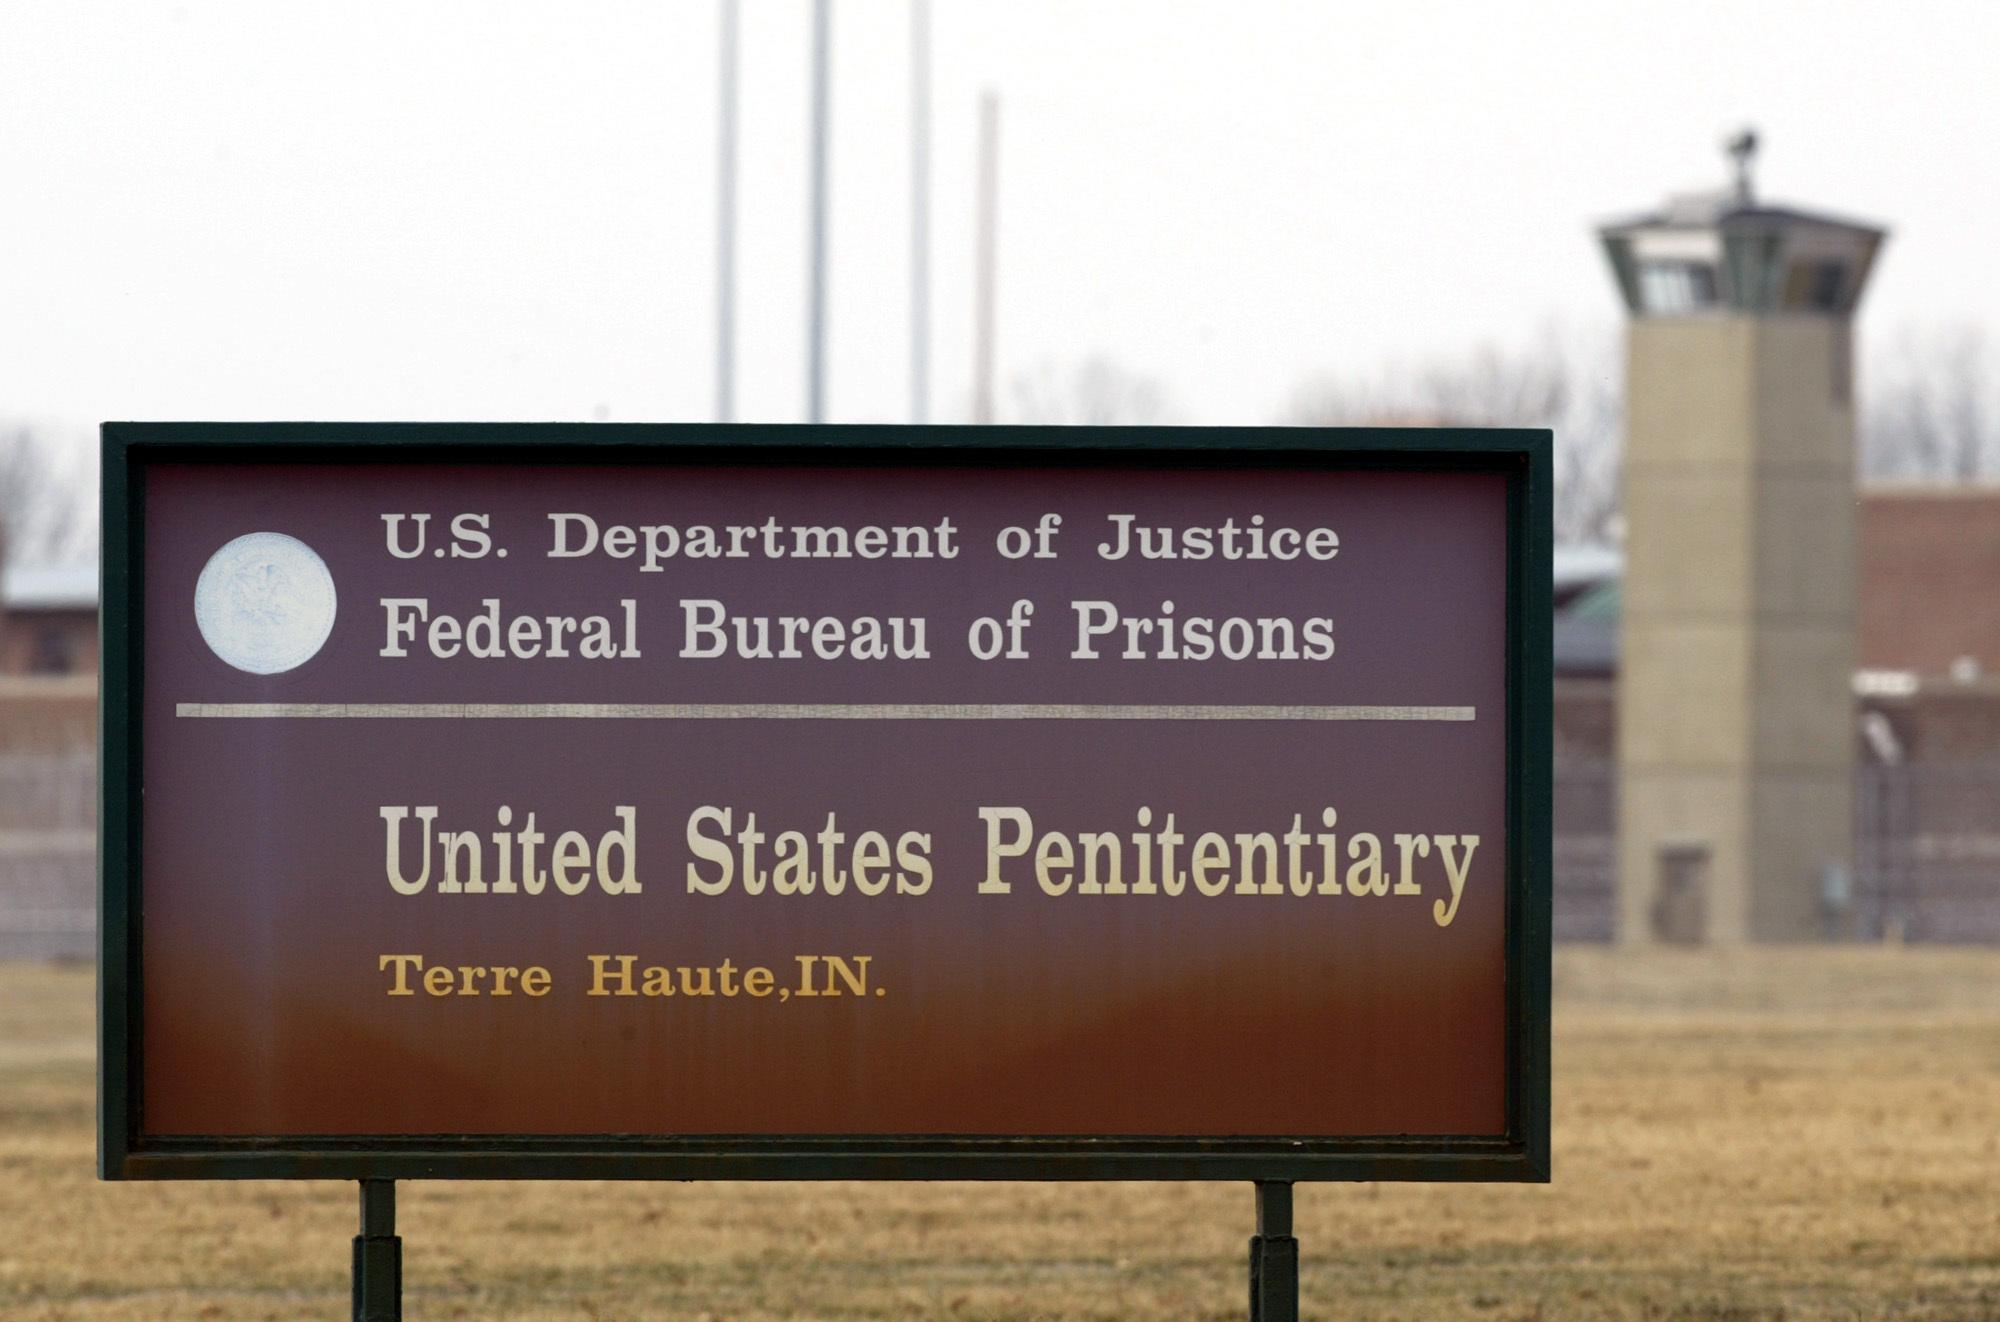 Justice Department mulled using fentanyl in federal executions: Report